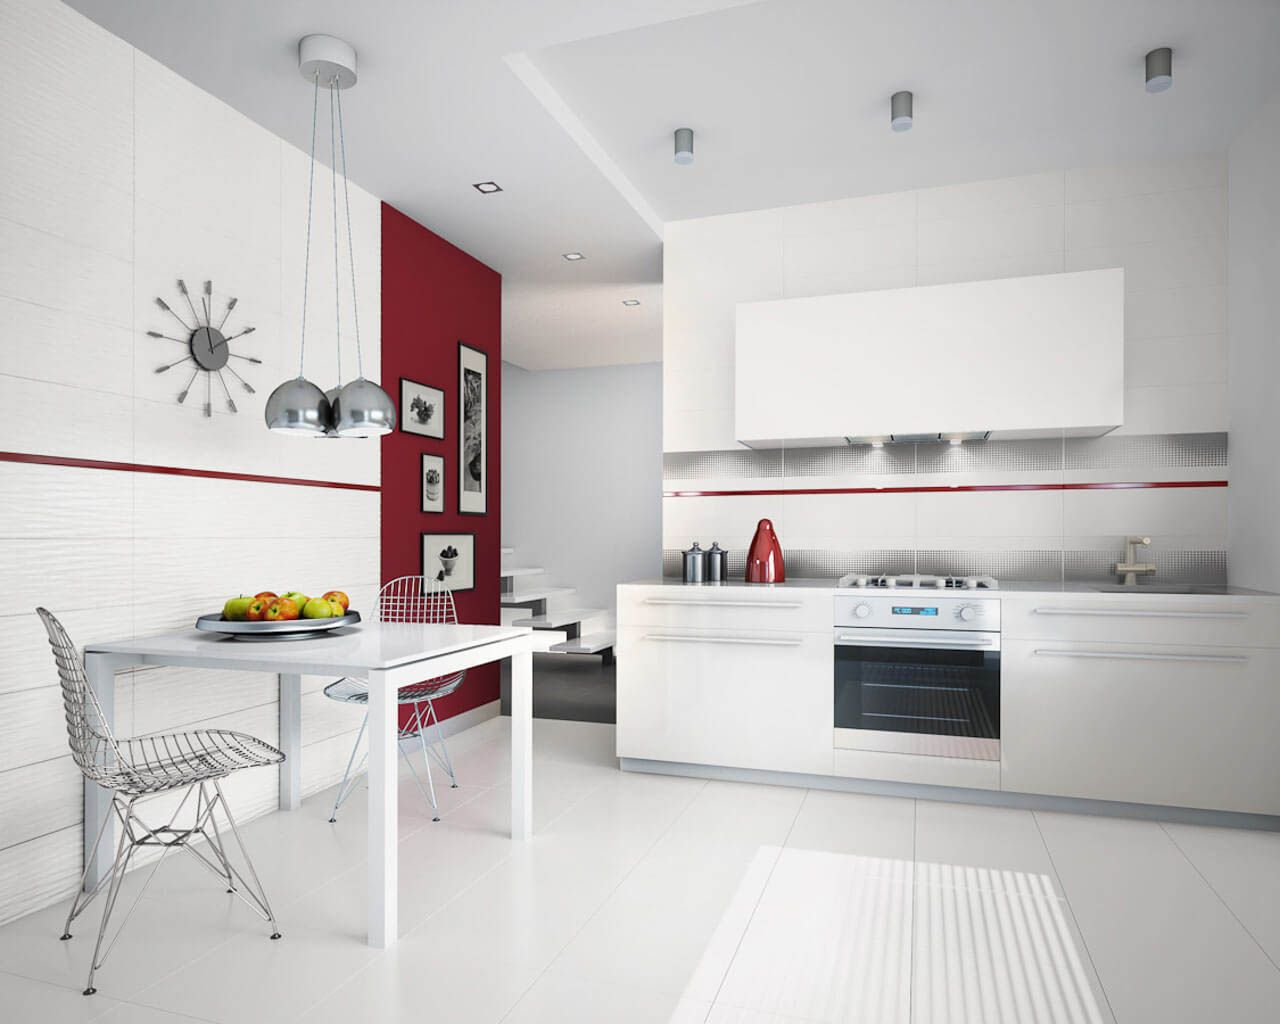 Minimalistic white kitchen with a red accent | Ceramika Paradyz